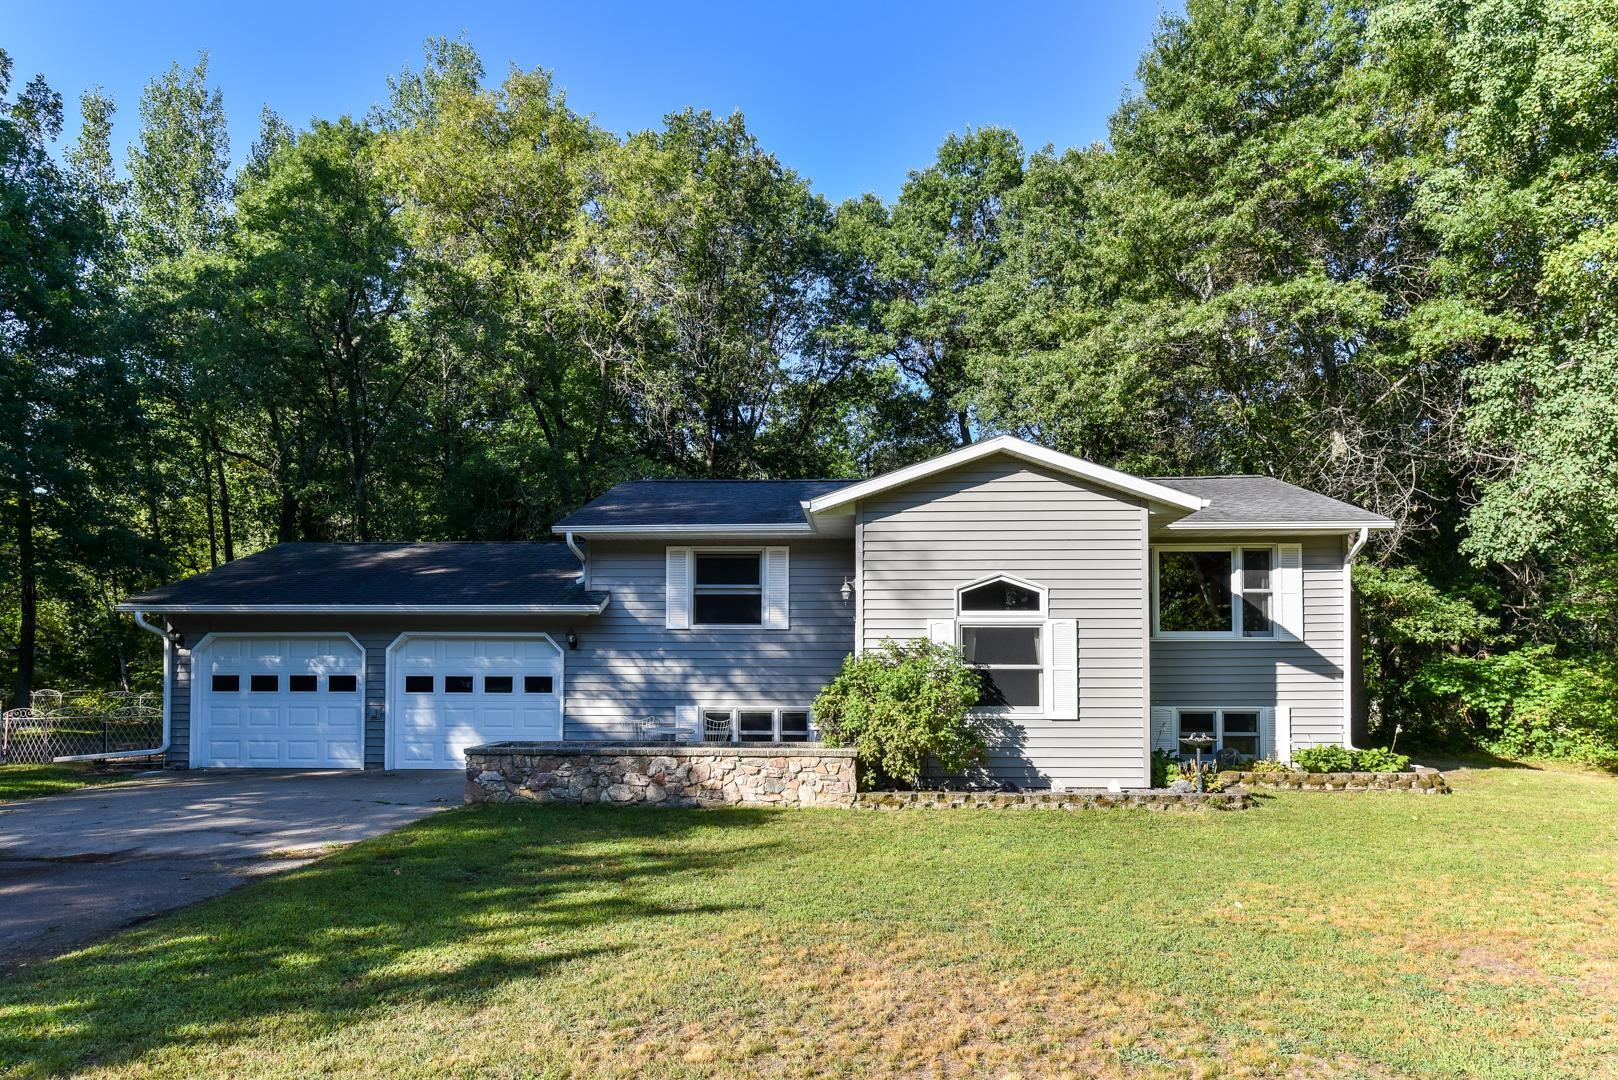 This Three Bedroom, two bath home is located in a fantastic neighborhood. You will enjoy the large rear deck overlooking the private back yard!  Schedule your private viewing today!  This property will not last long.